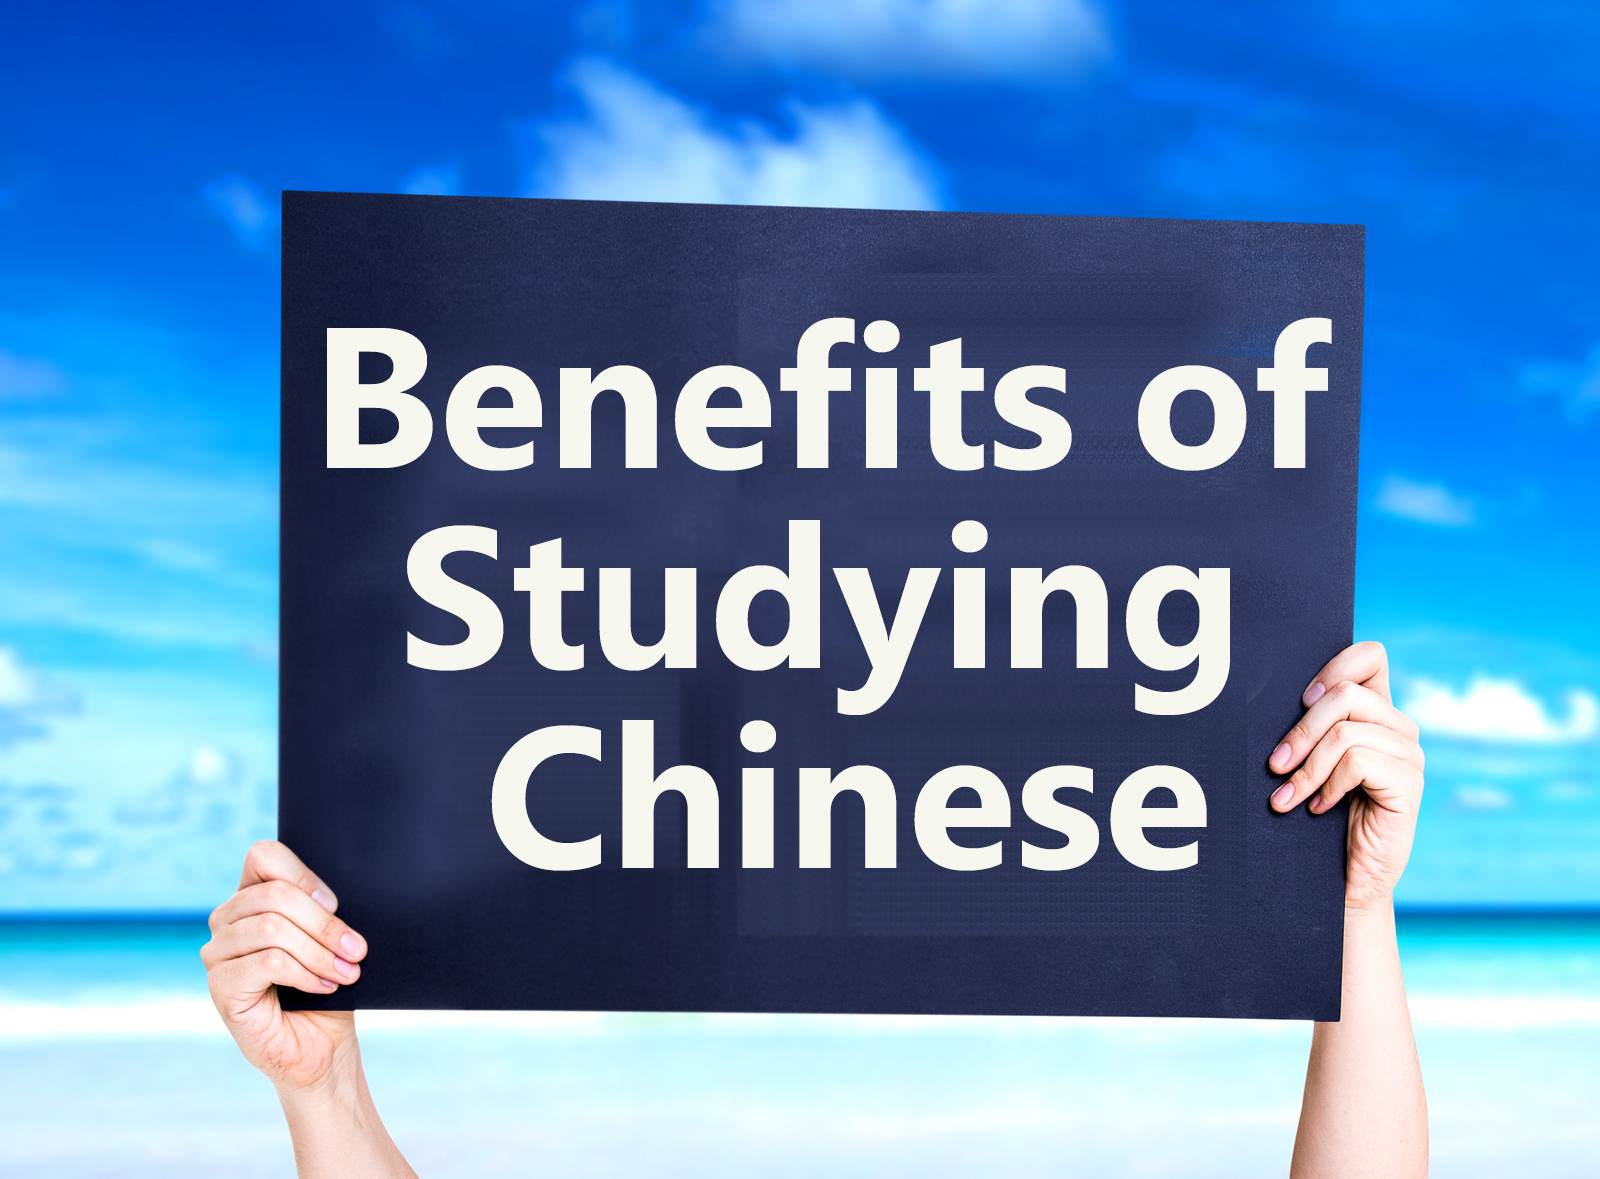 Benefits of studying Chinese